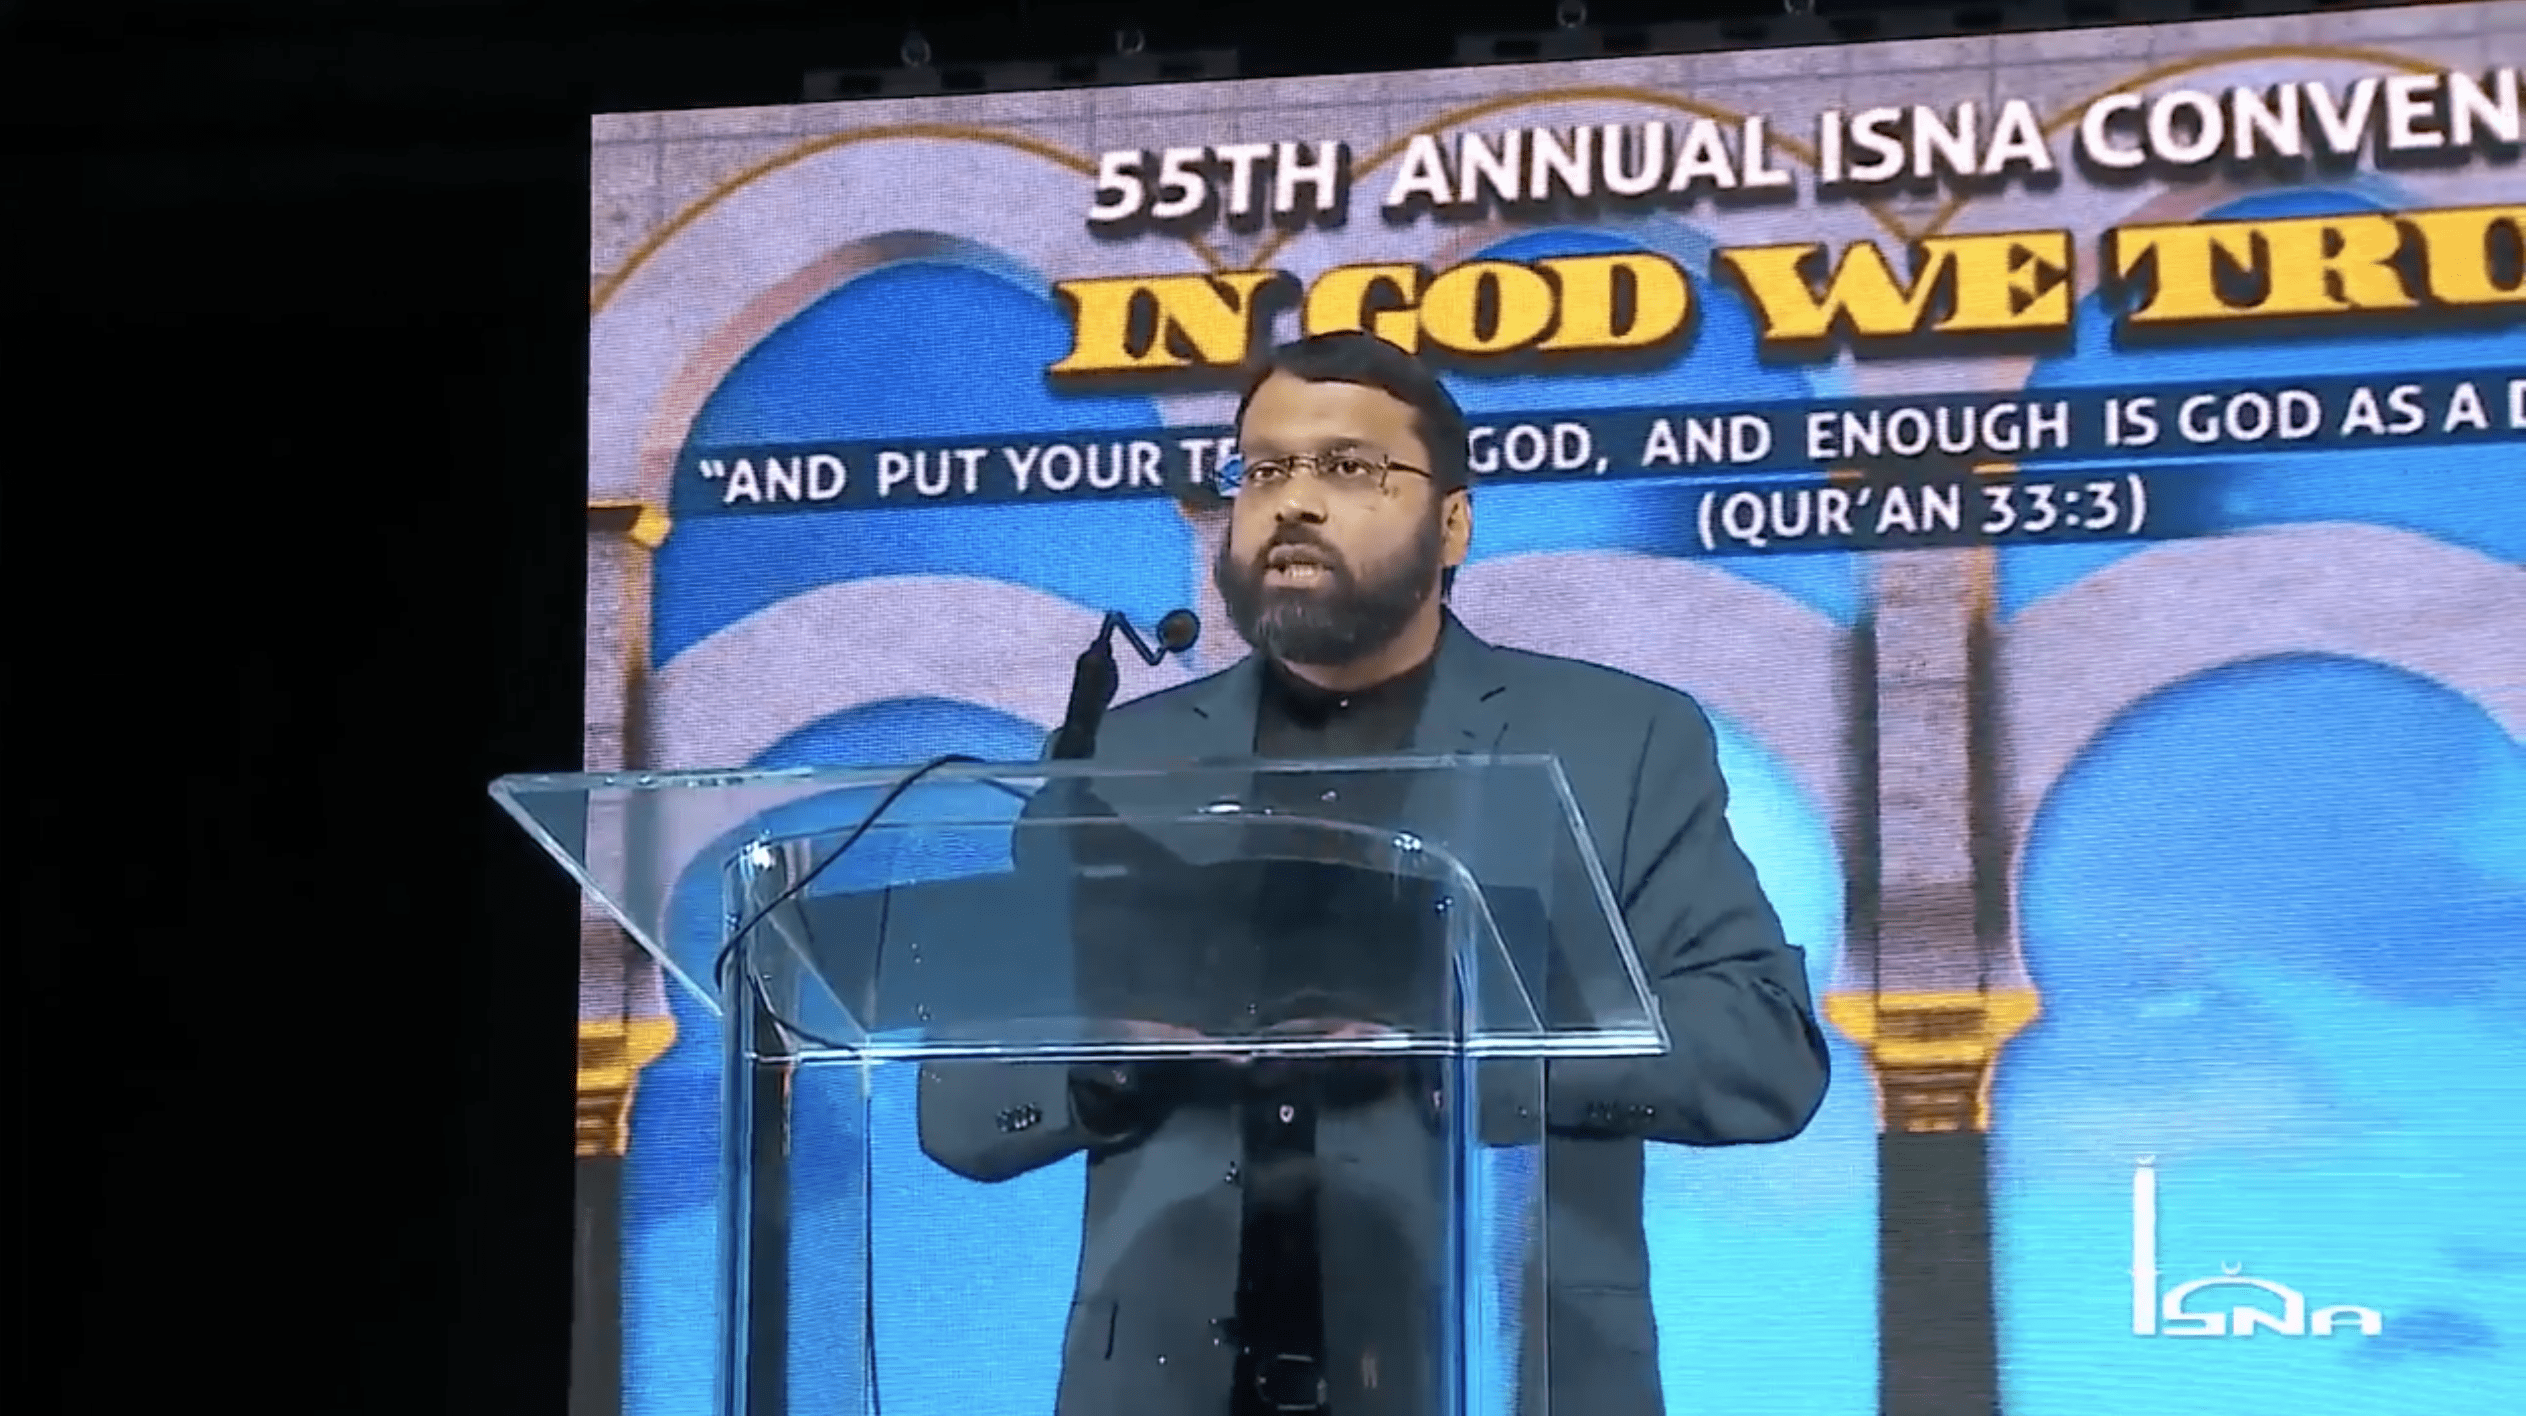 Yasir Qadhi – In God We Trust: Contemporary Lessons from the Seerah